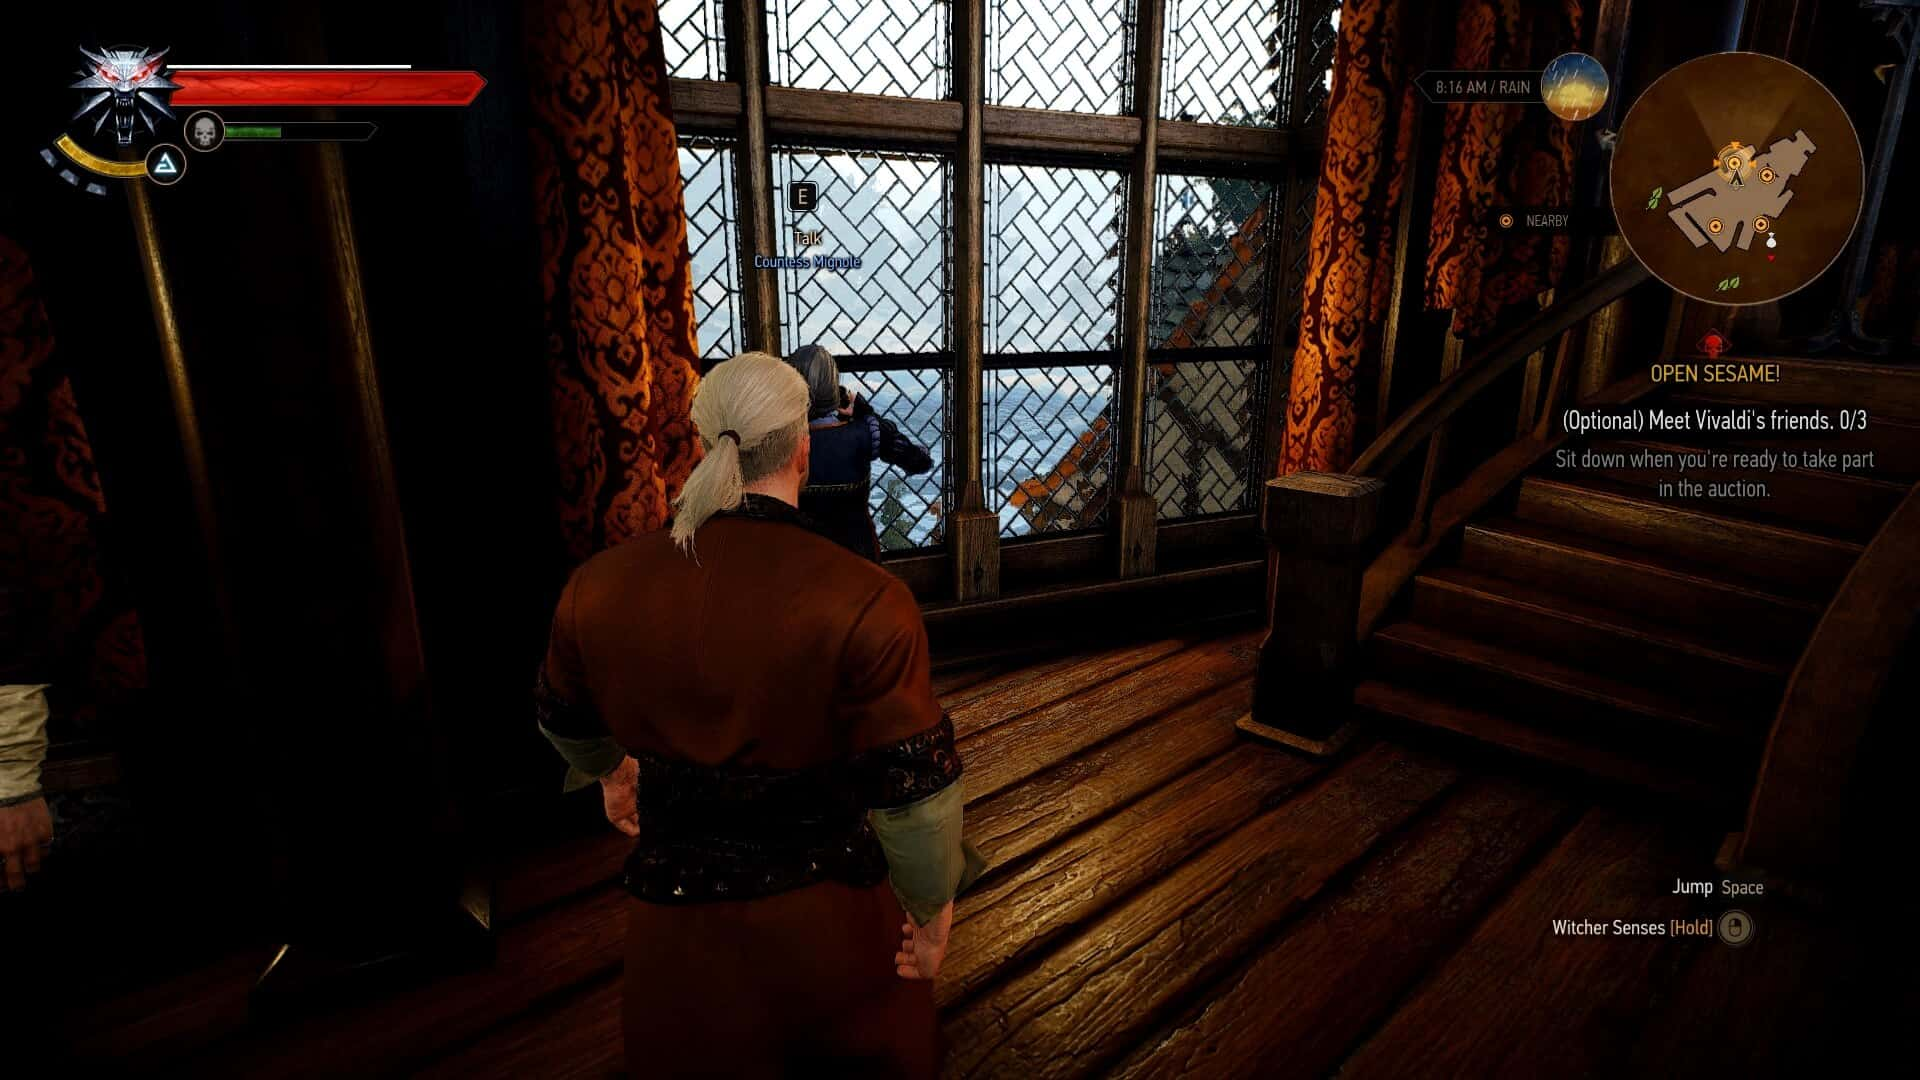 Witcher Hour   Page 3 of 11   The Witcher 3: Wild Hunt Fansite